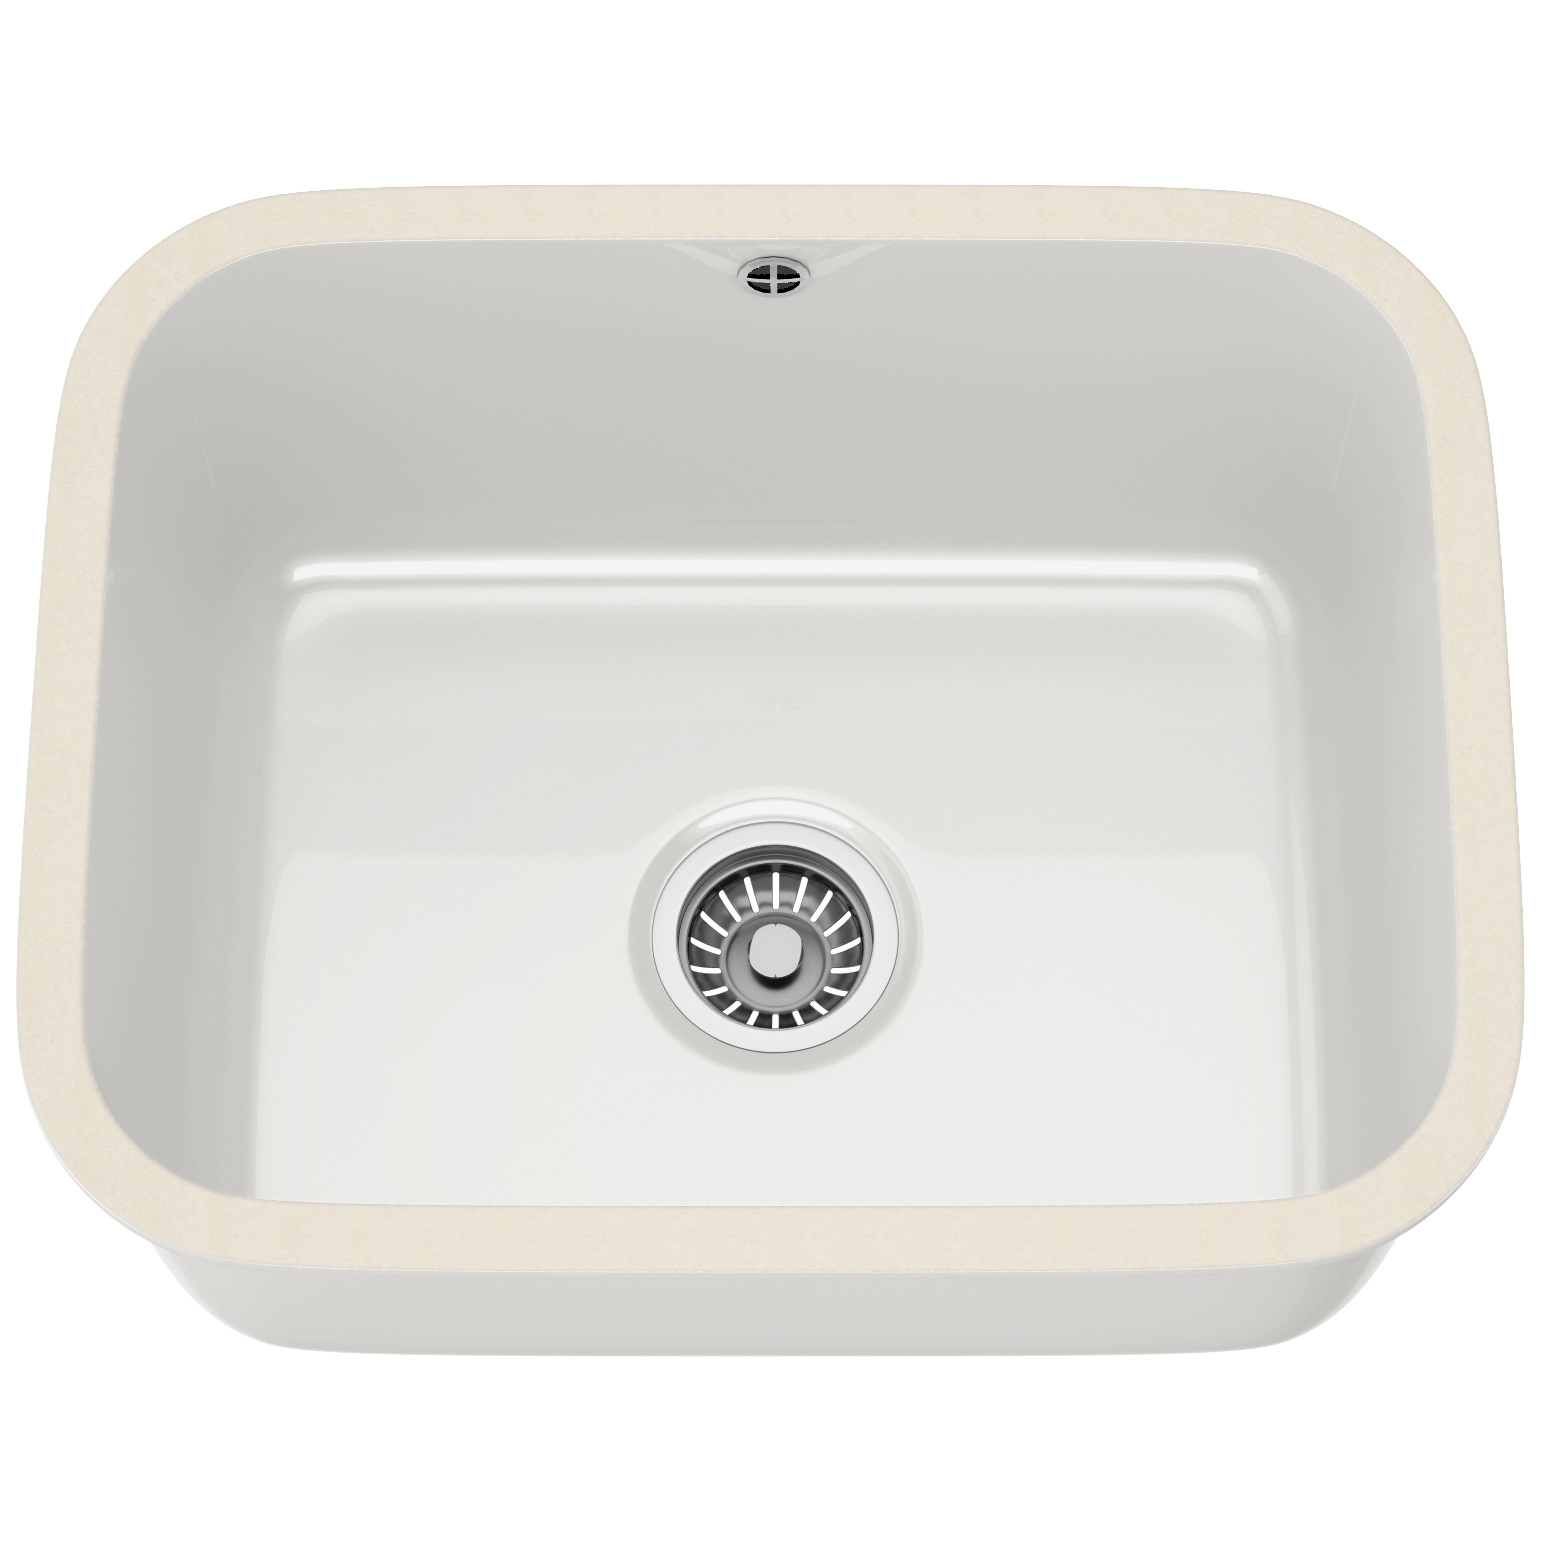 Franke v and b vbk 110 50 ceramic 1 0 bowl undermount - Undermount ceramic kitchen sink ...